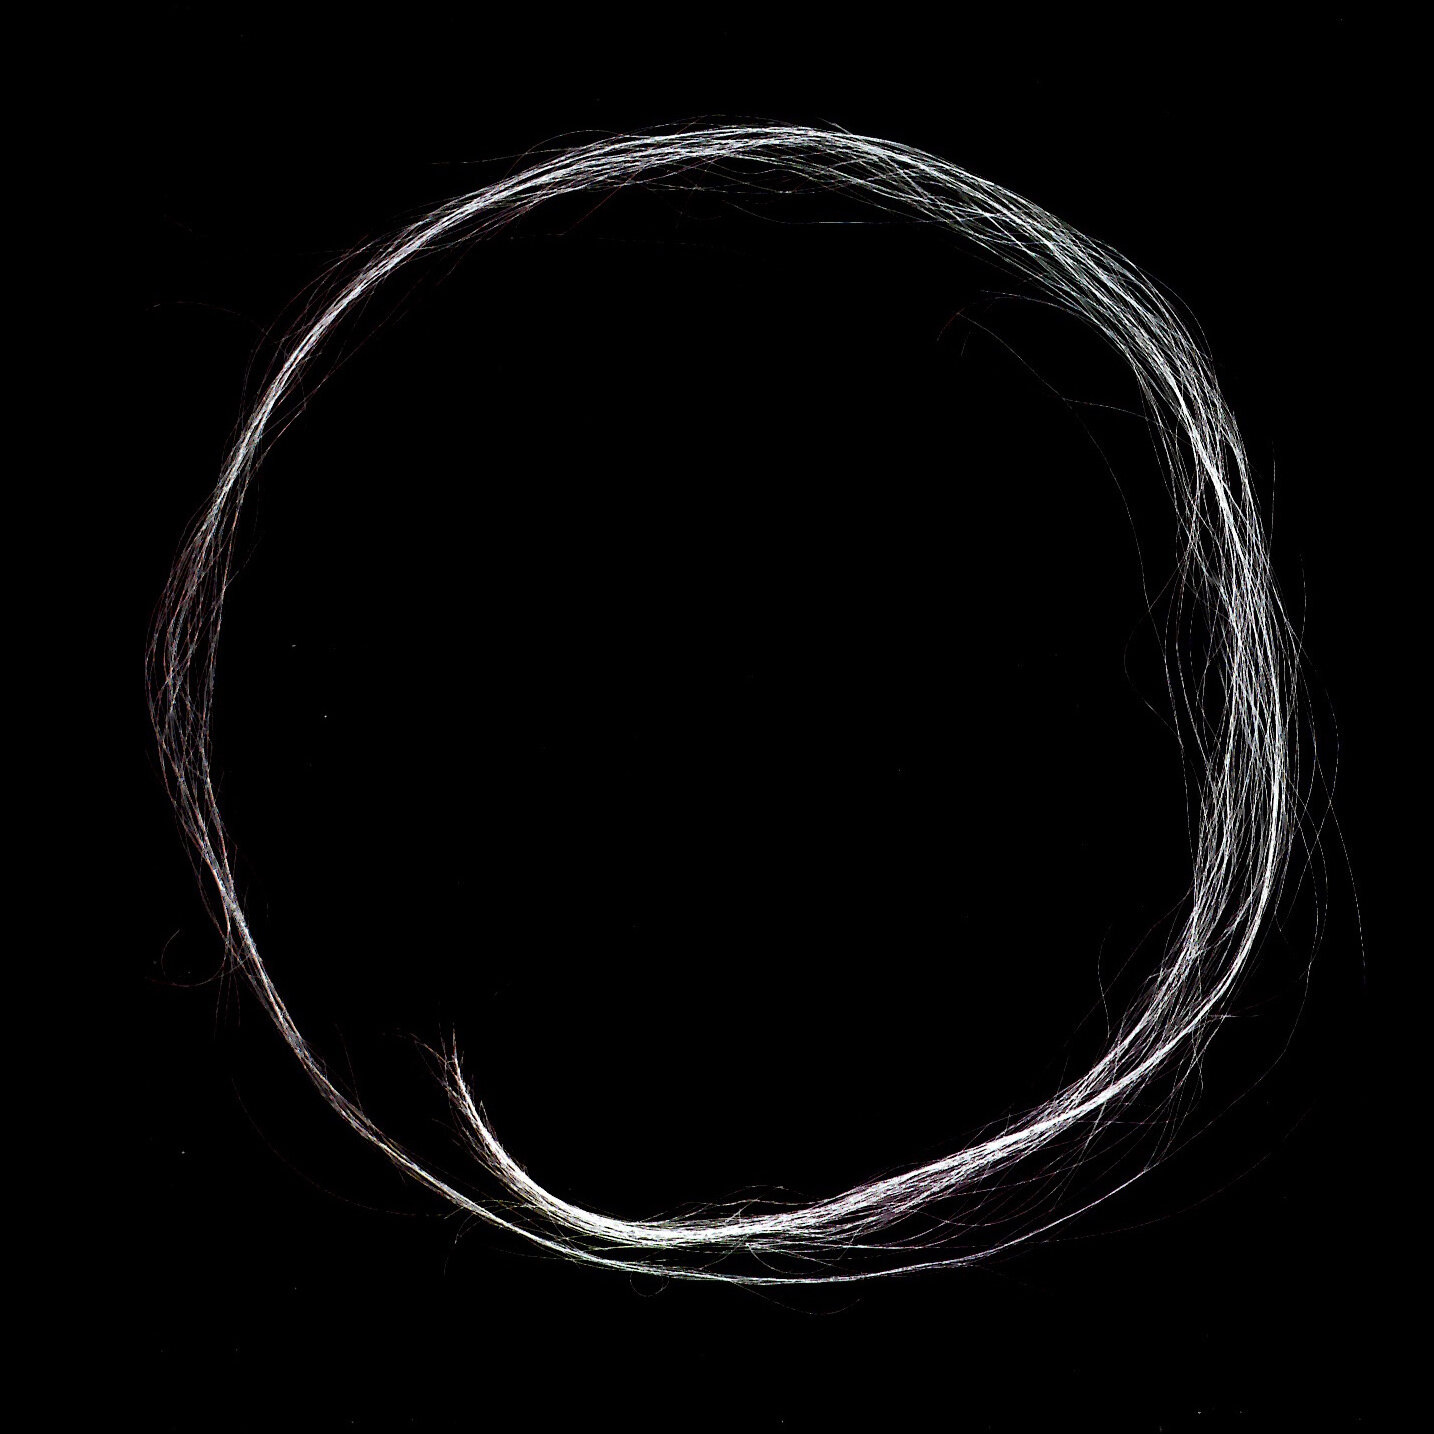 """Centrada"", 2003, human hair scanned, printed on archival paper, 24 x 24 inches"